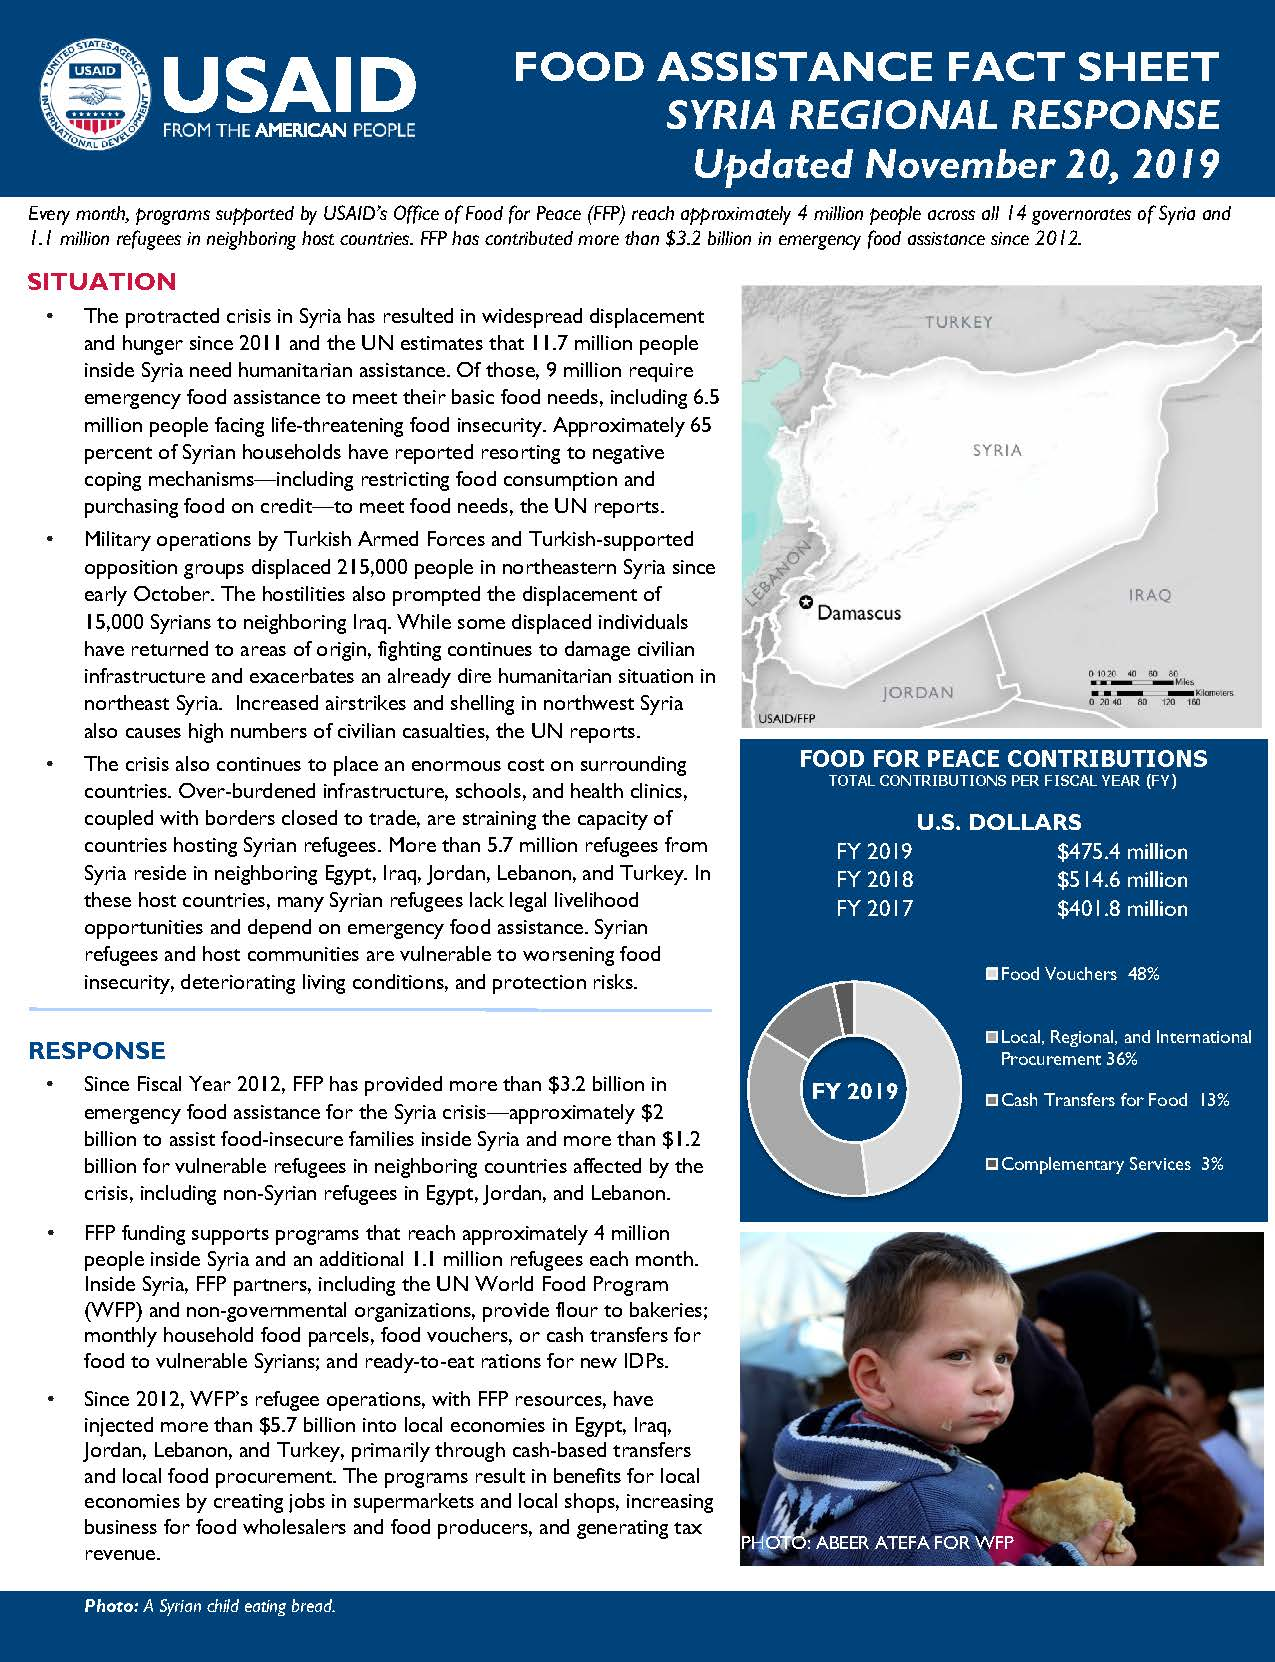 Food Assistance Fact Sheet - Syria